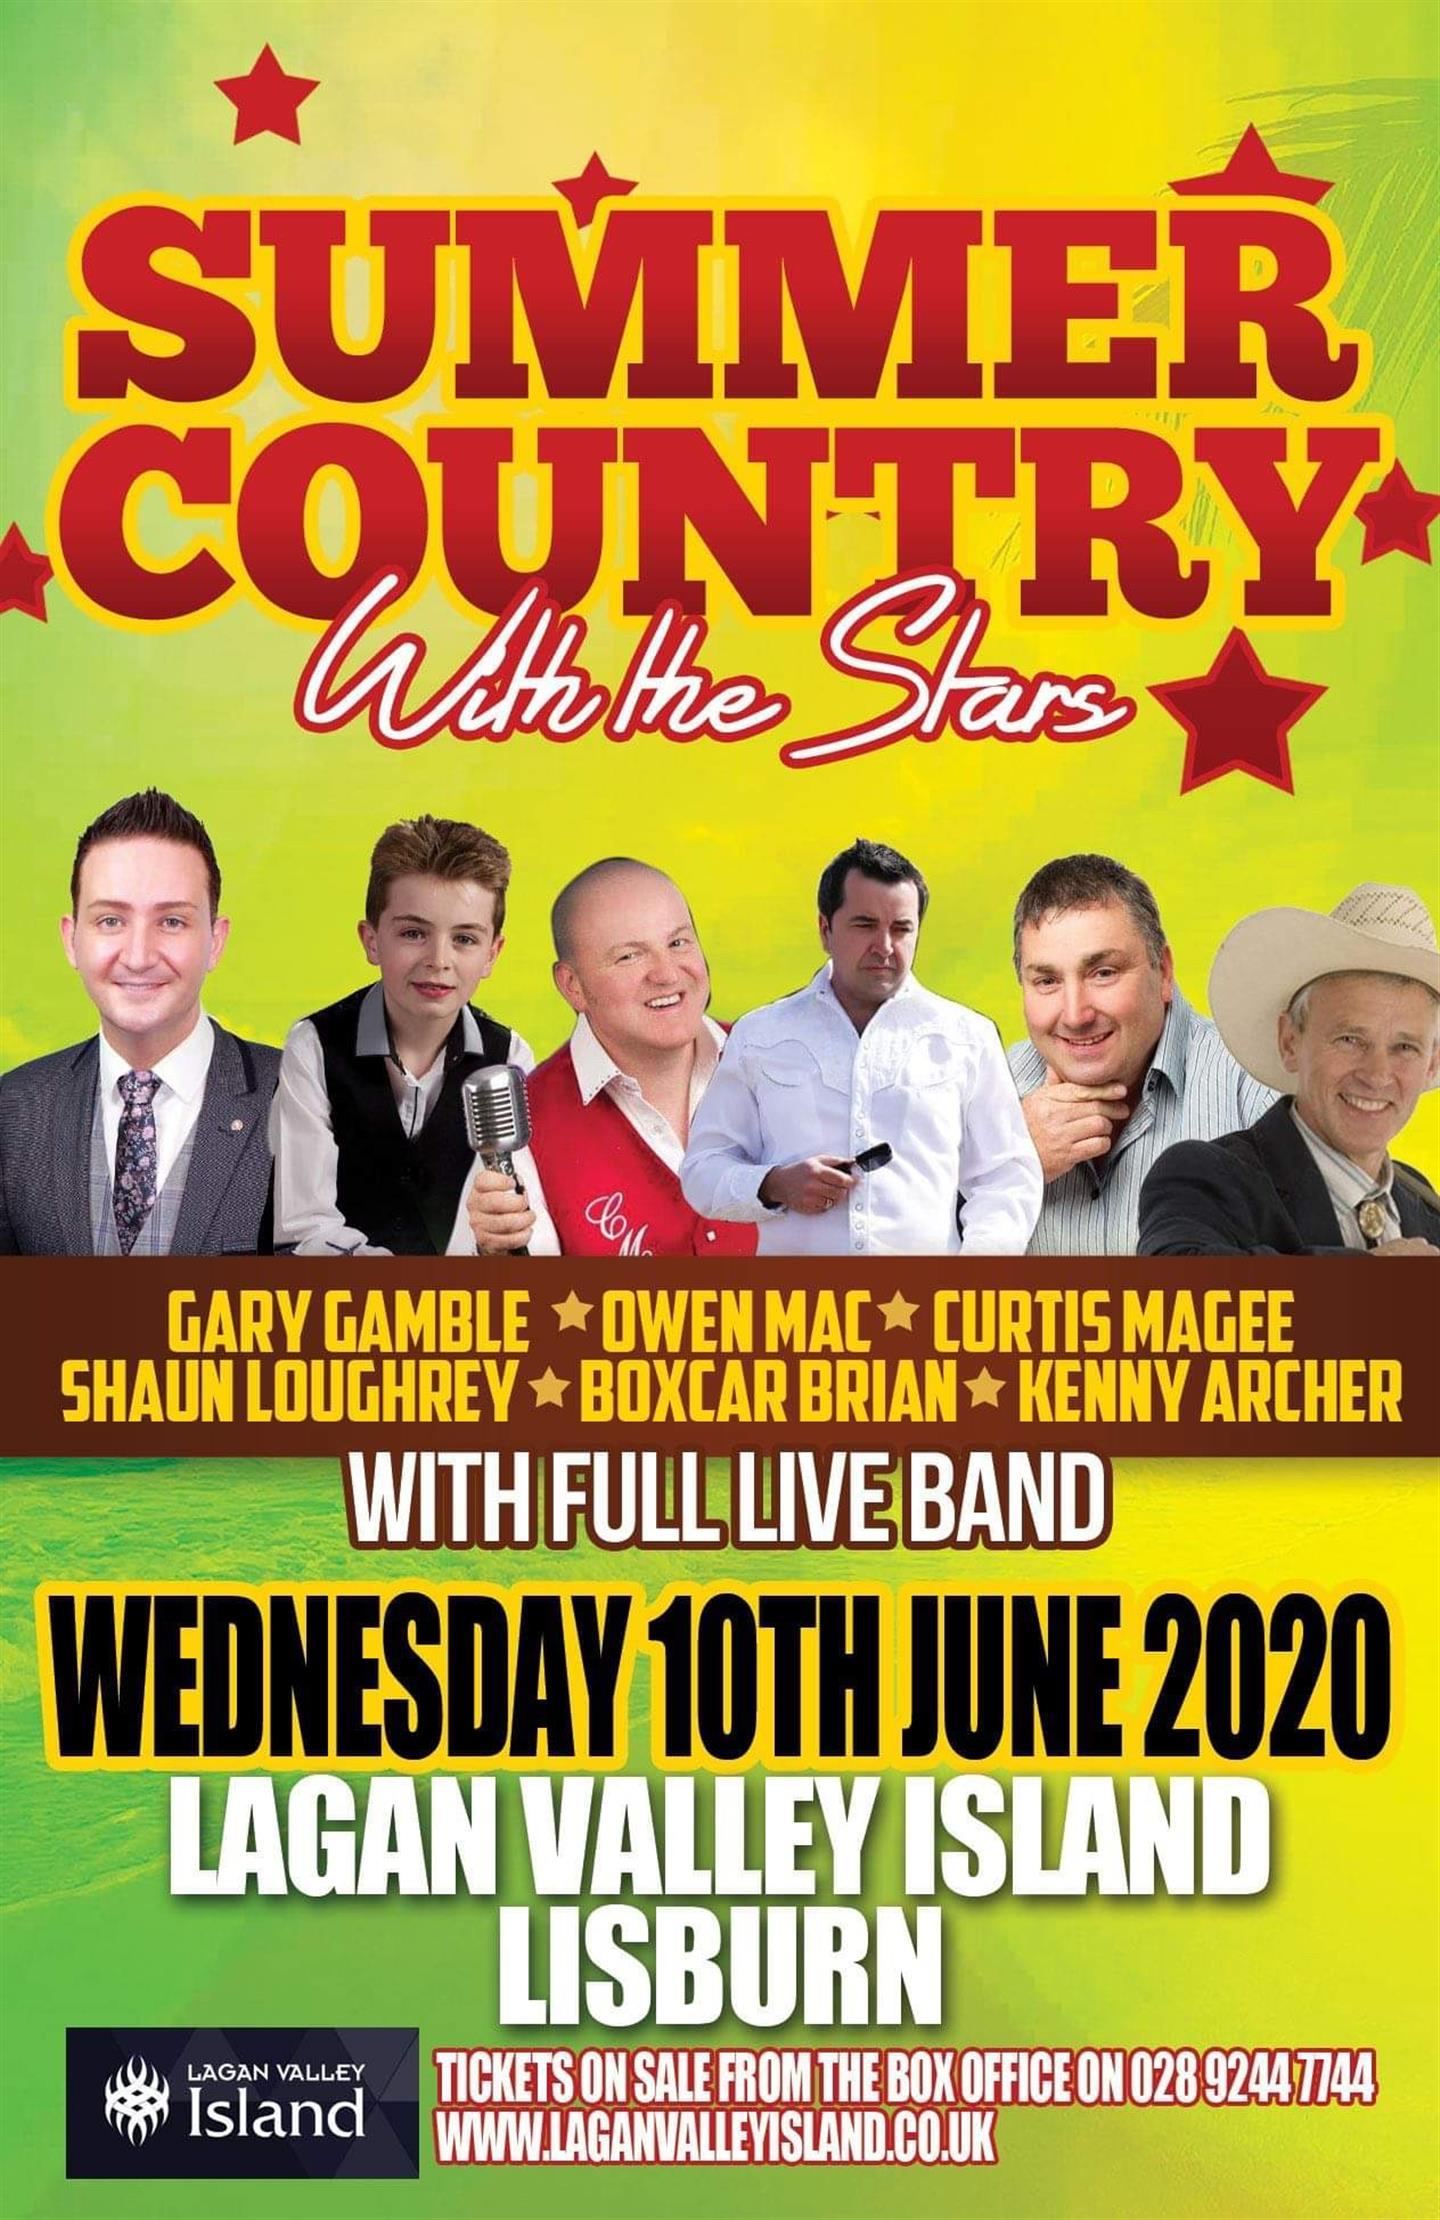 Summer Country With The Stars Show